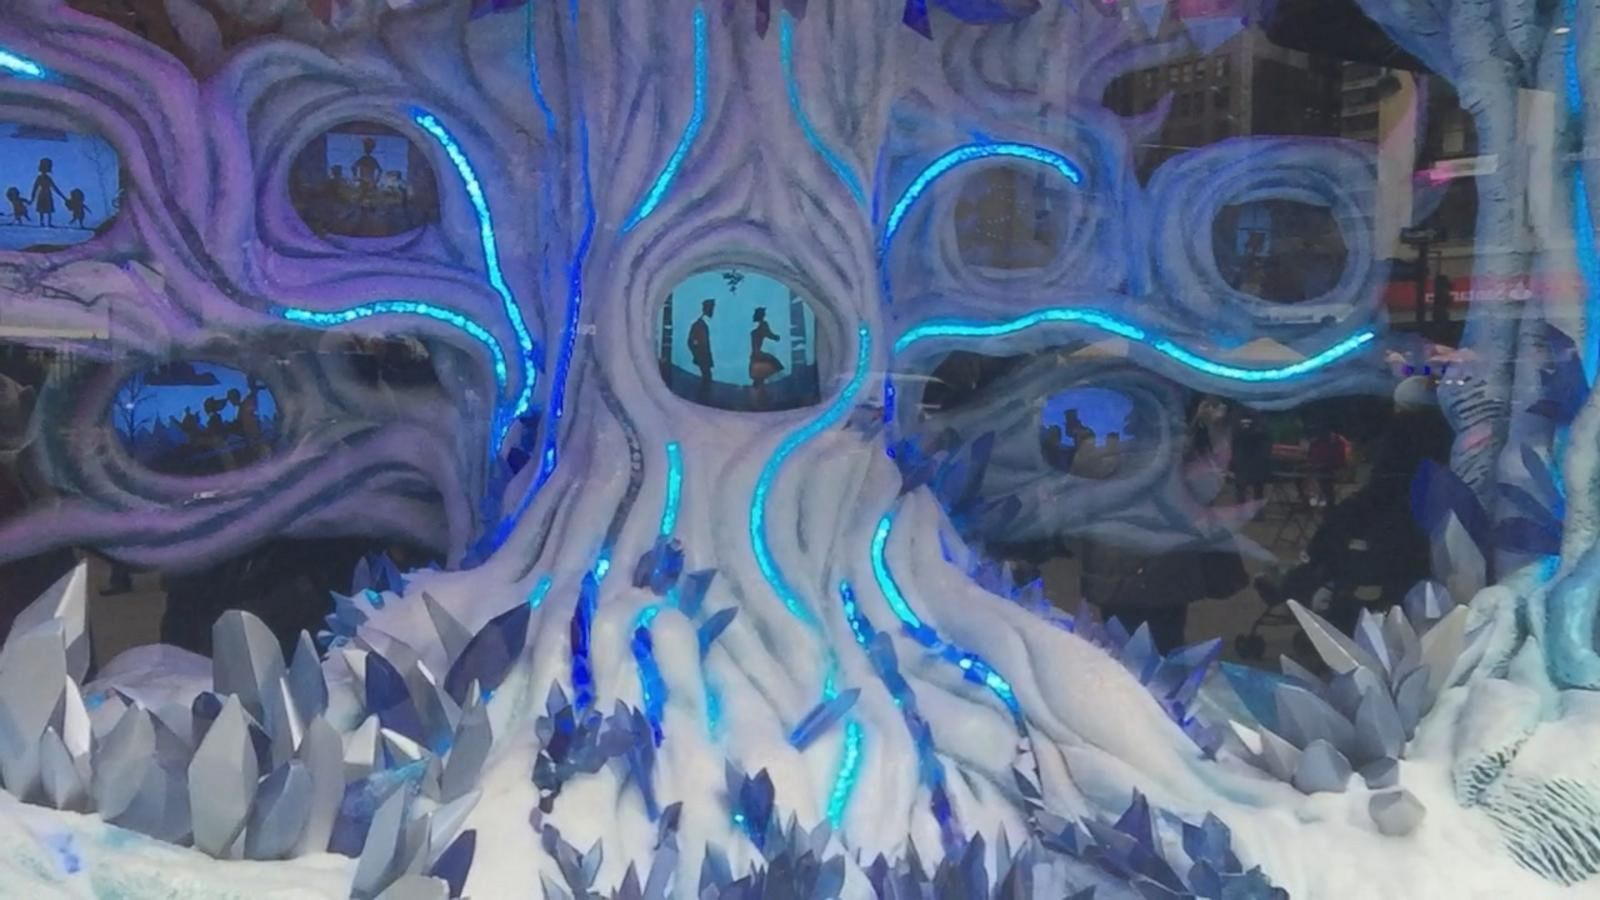 VIDEO: A Look at Macy's Holiday Window Display in New York City